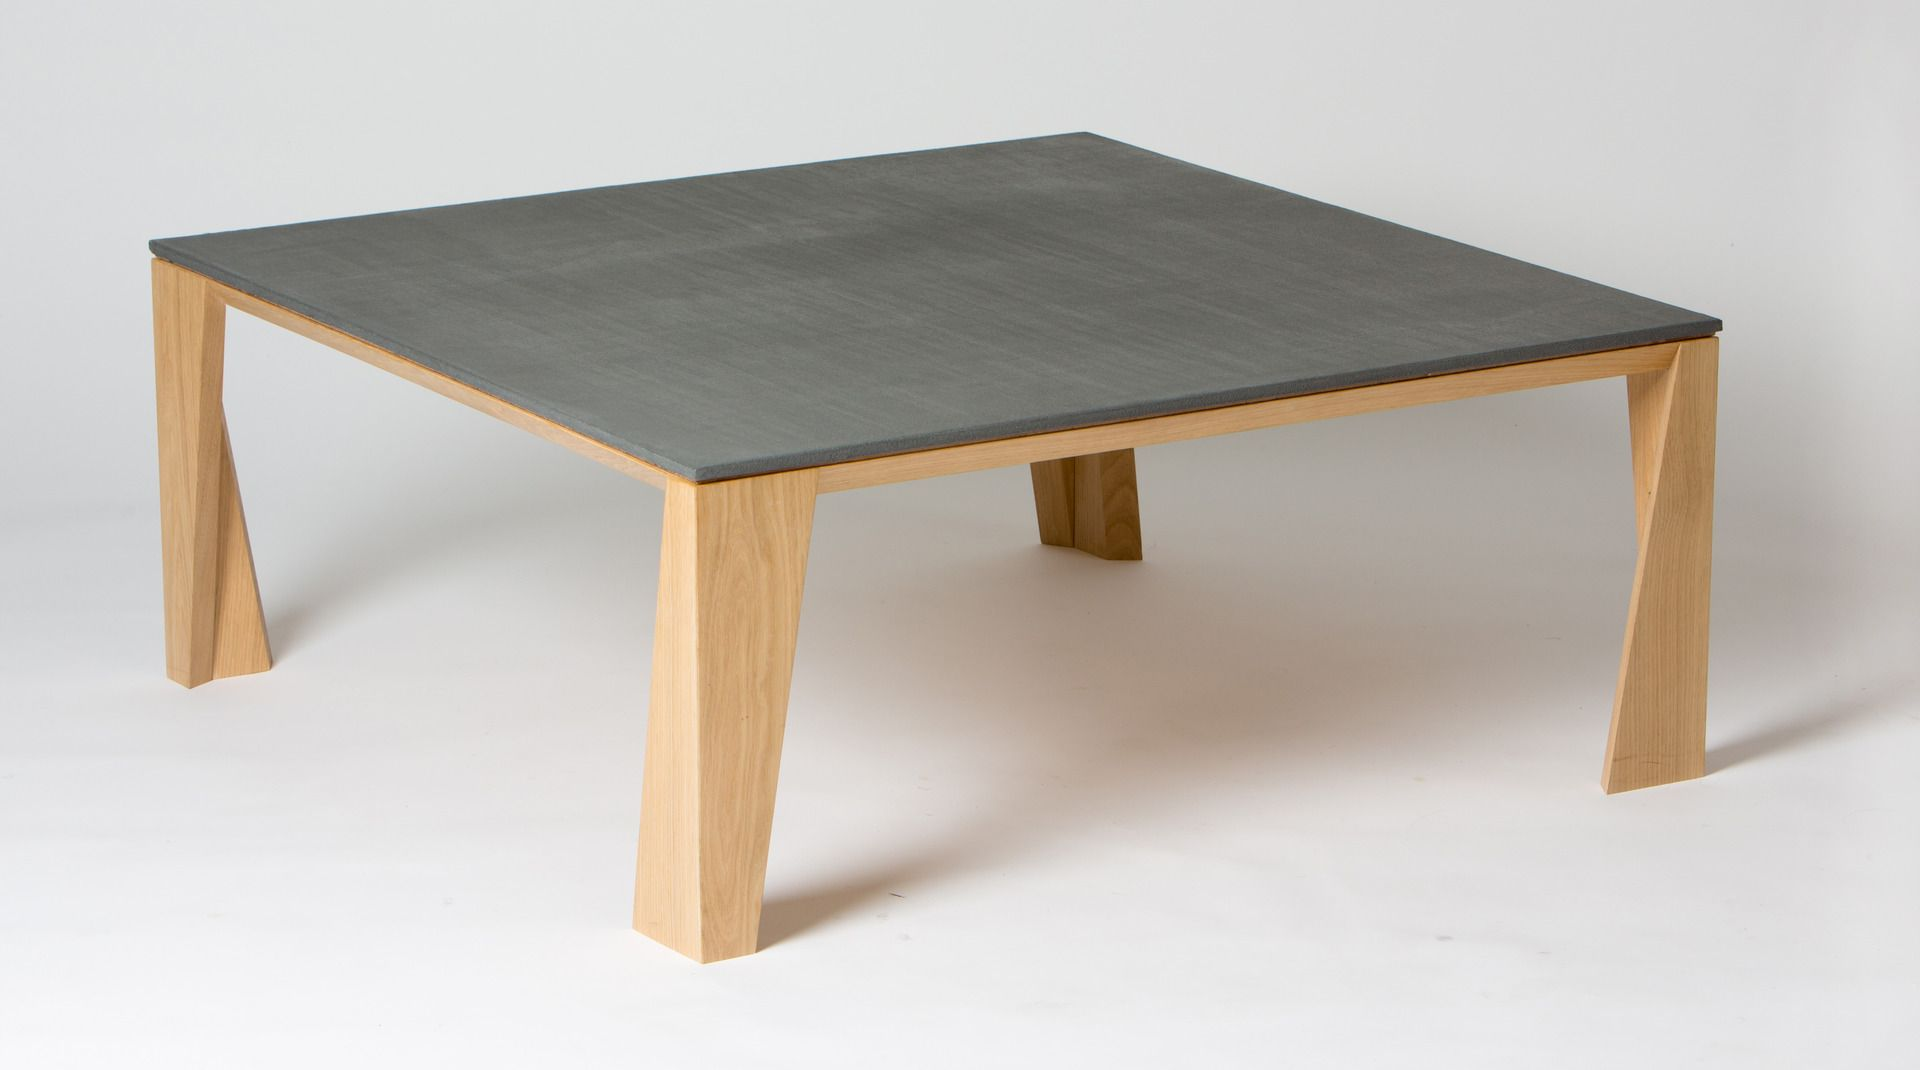 Idees Table De Salon Table Basse Bois Et Béton Tables Basses Concrete Table Table